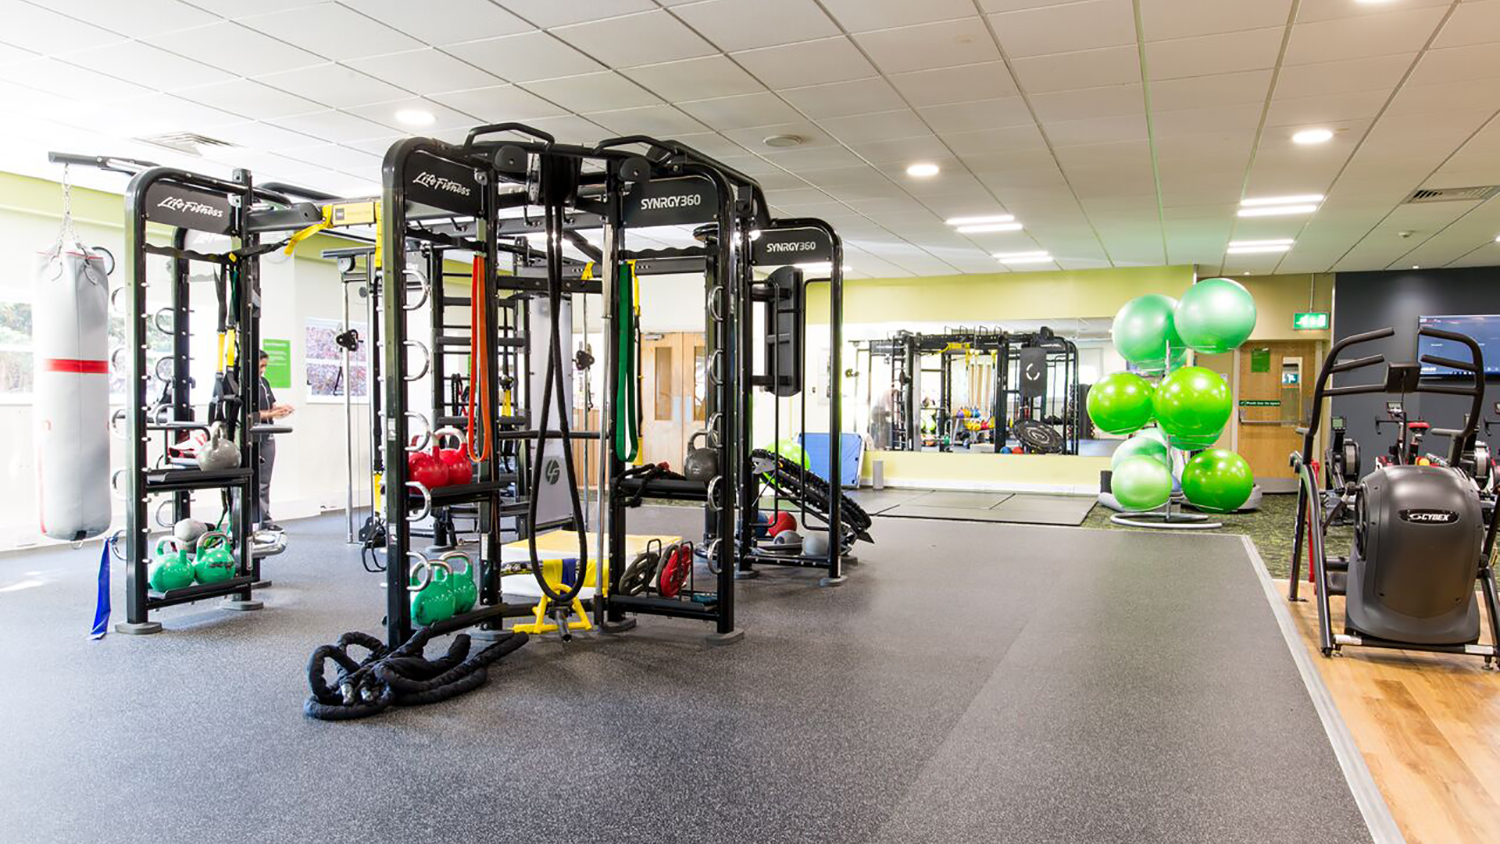 Stoke Poges Fitness & Wellbeing Gym (Slough)